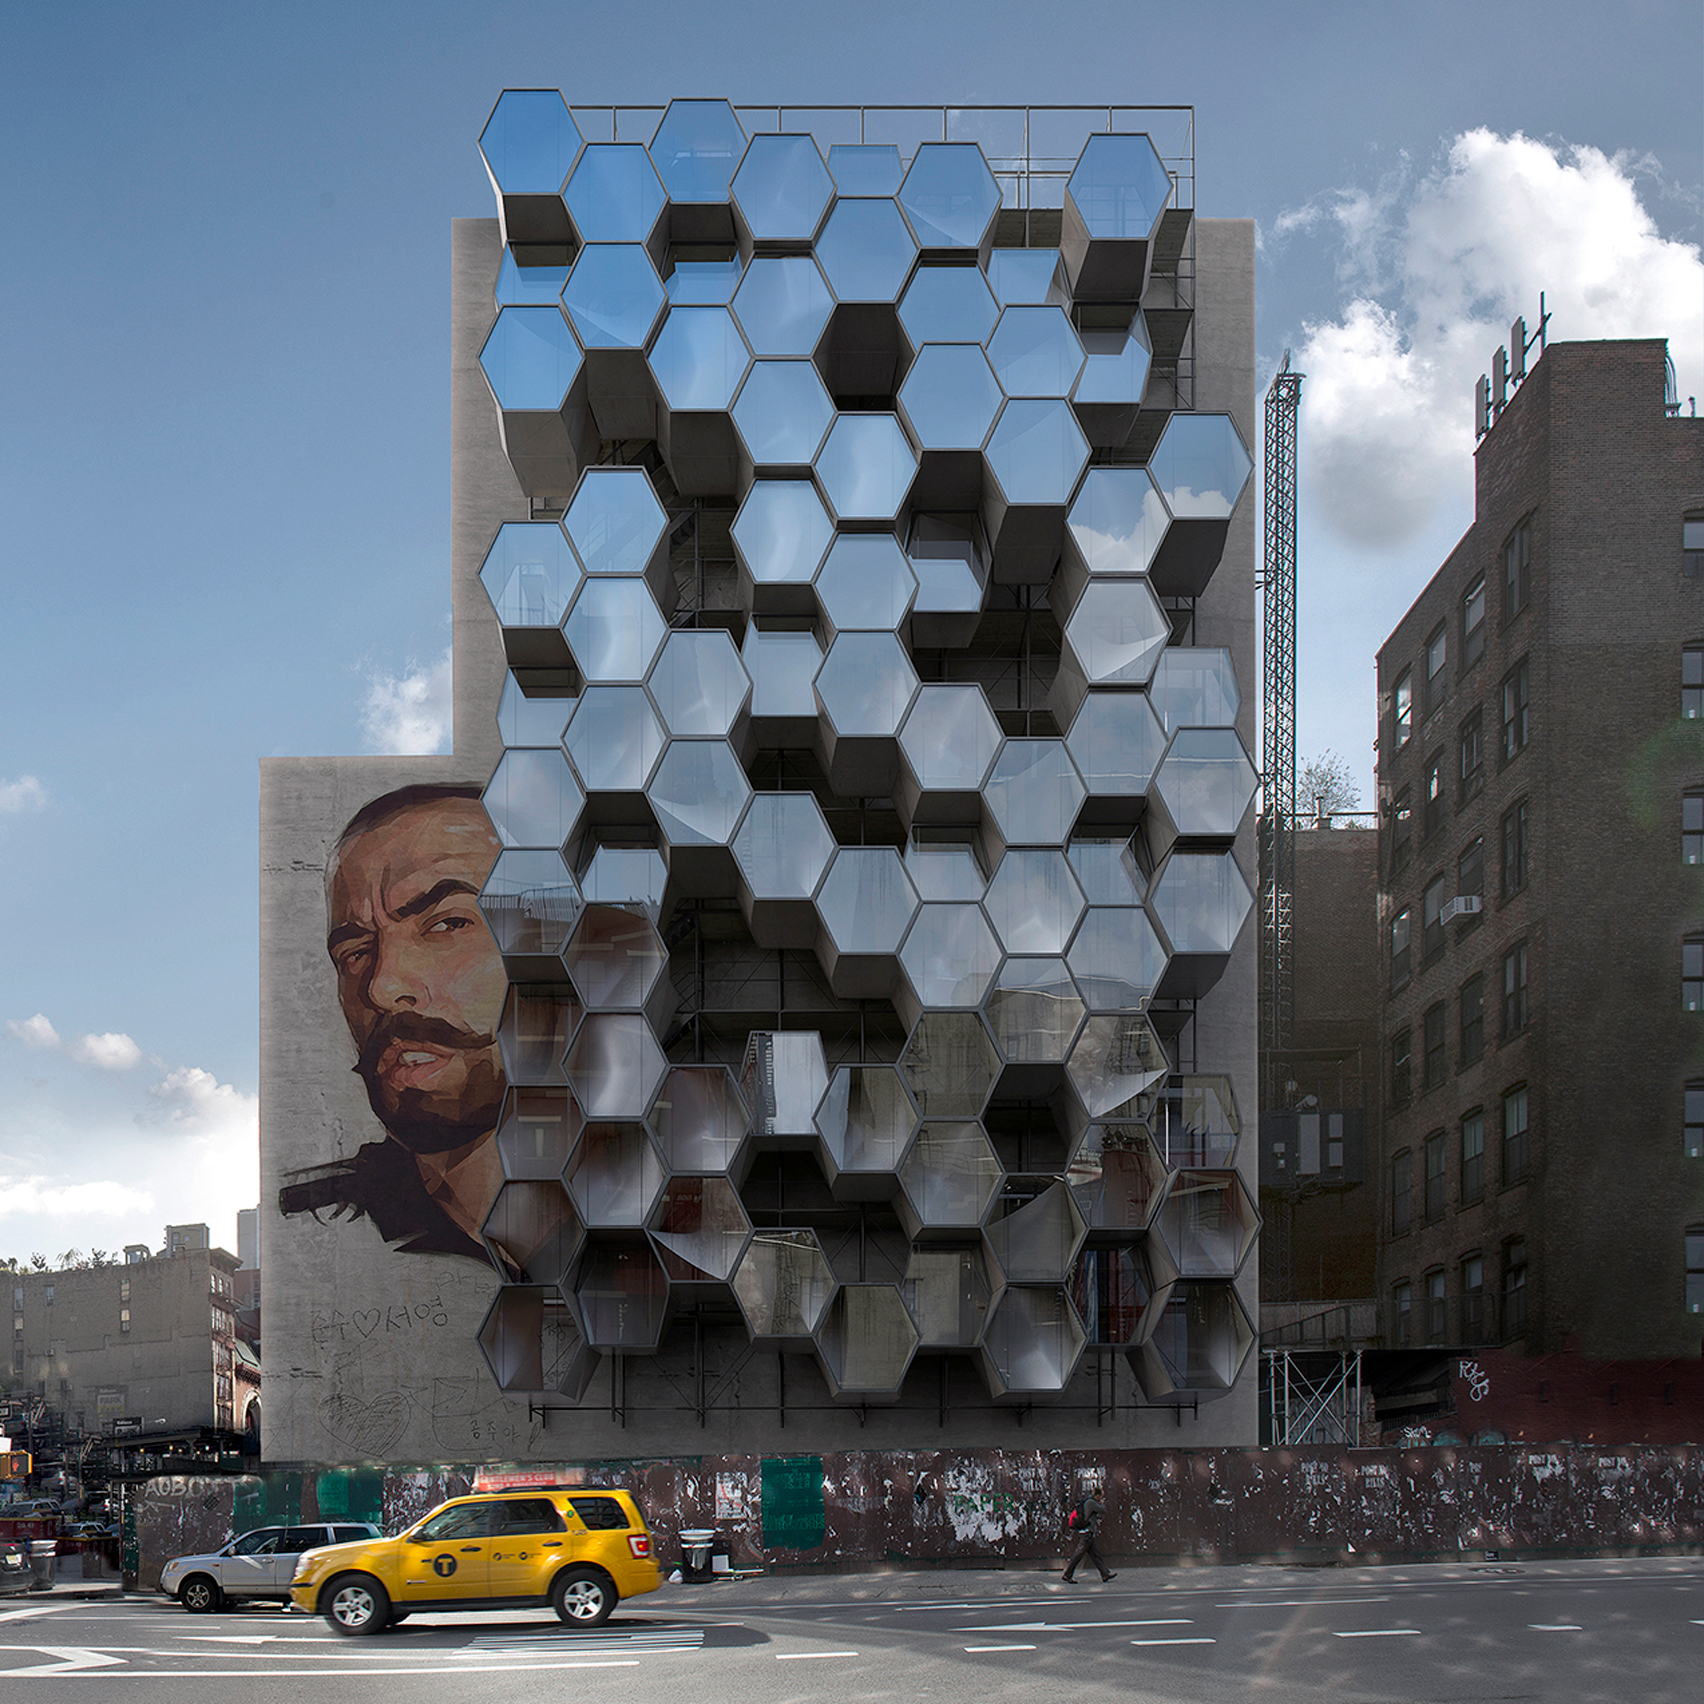 Attirant Framlab Proposes Parasitic Hexagonal Pods To Sleep New Yorku0027s Homeless